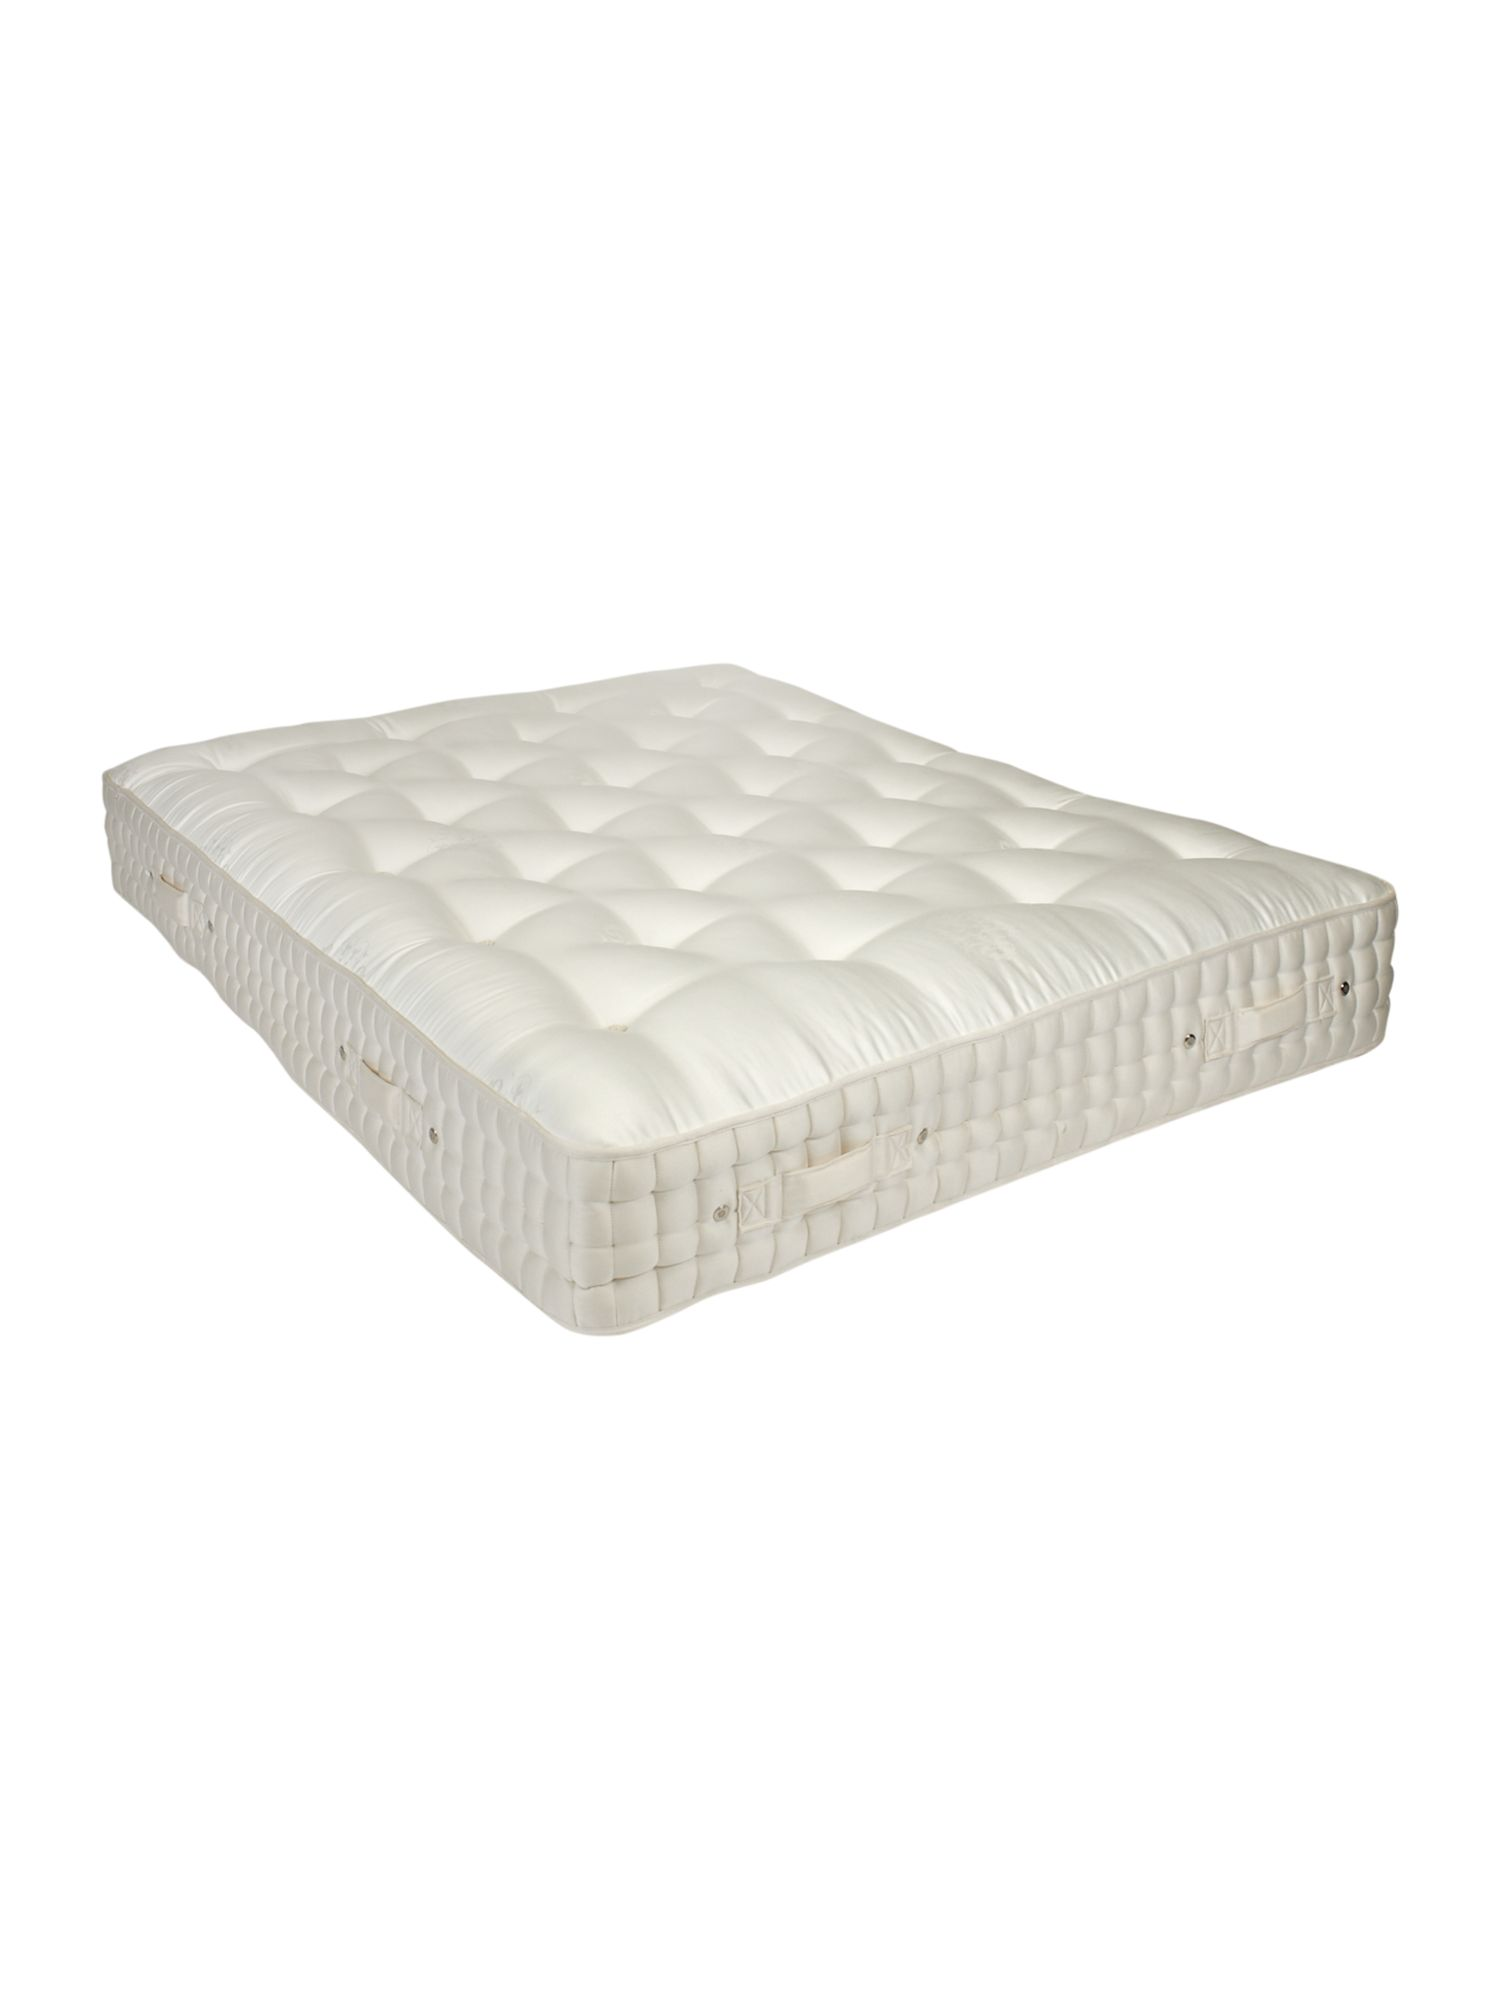 Norton mattress range